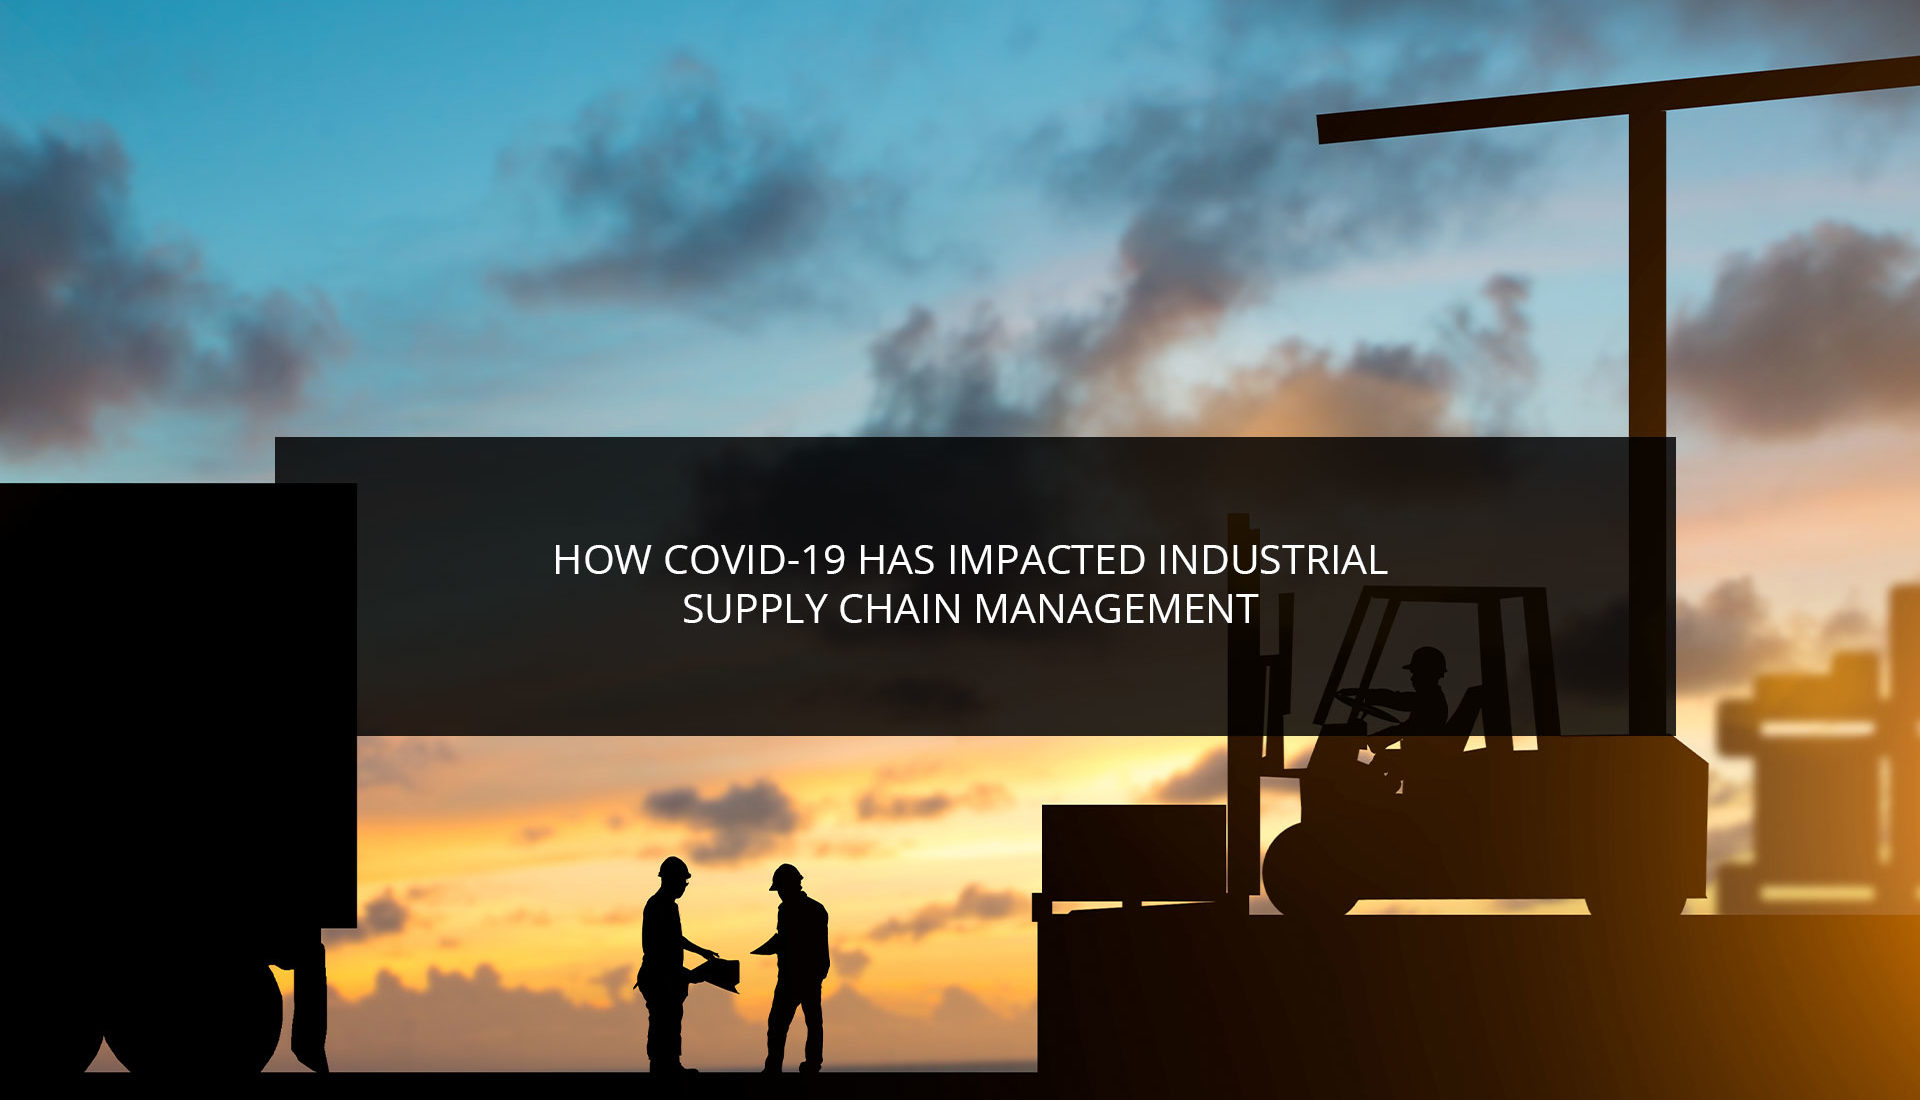 How COVID-19 Has Impacted Industrial Supply Chain Management